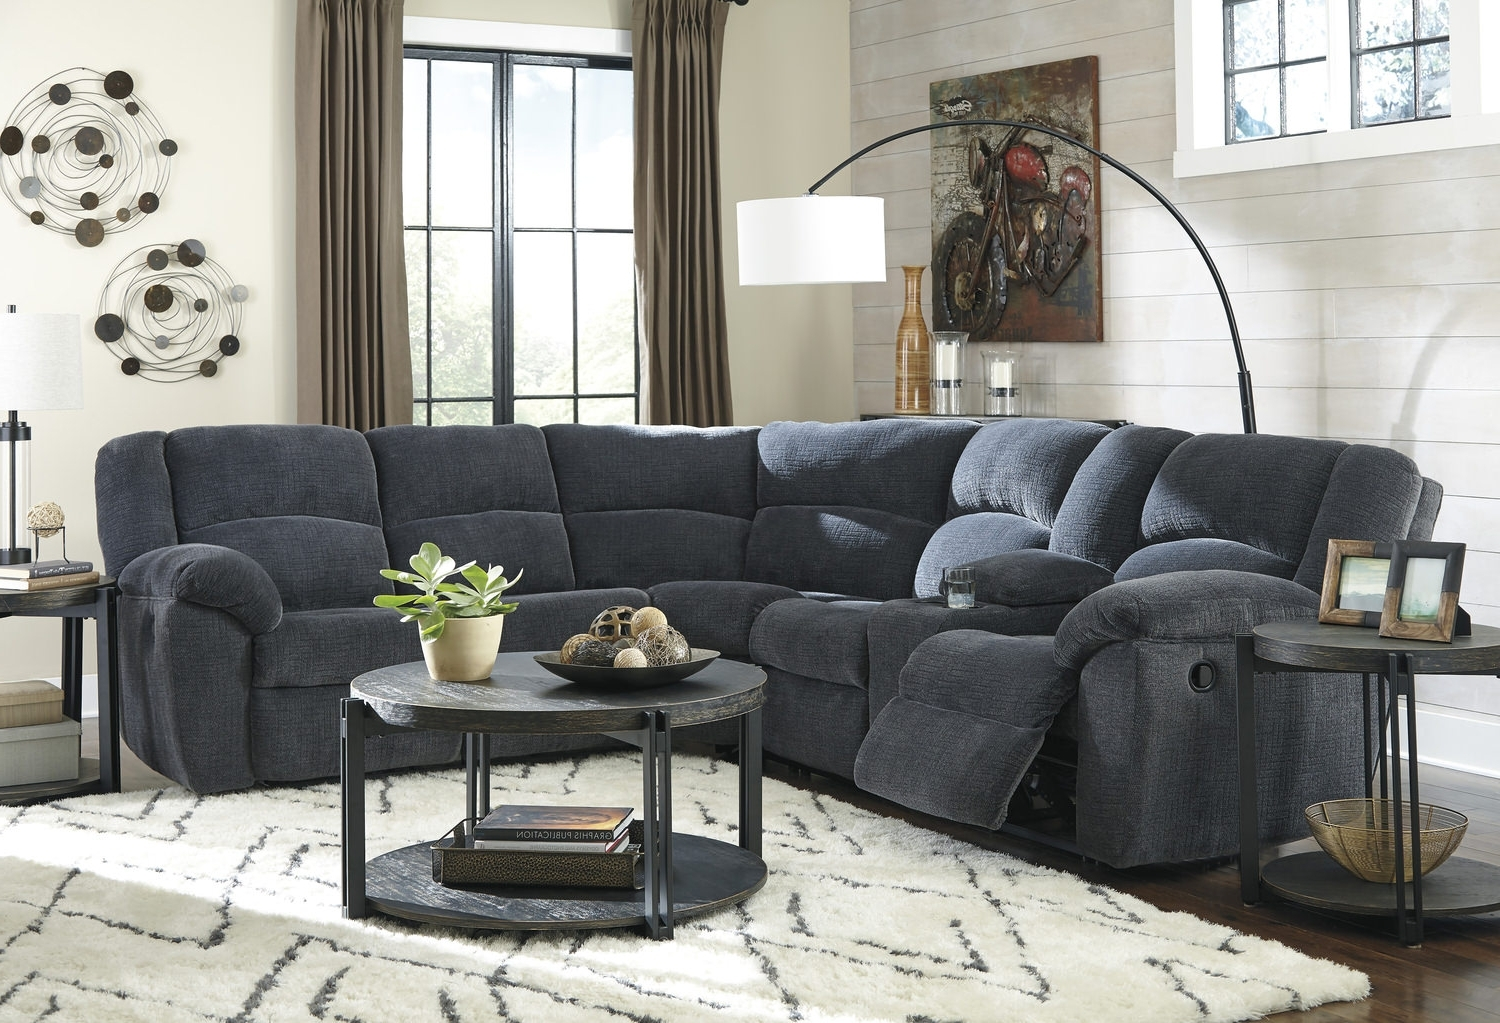 St Cloud Mn Sectional Sofas Throughout Latest Texas 2 Piece Reclining Sectional (View 9 of 20)